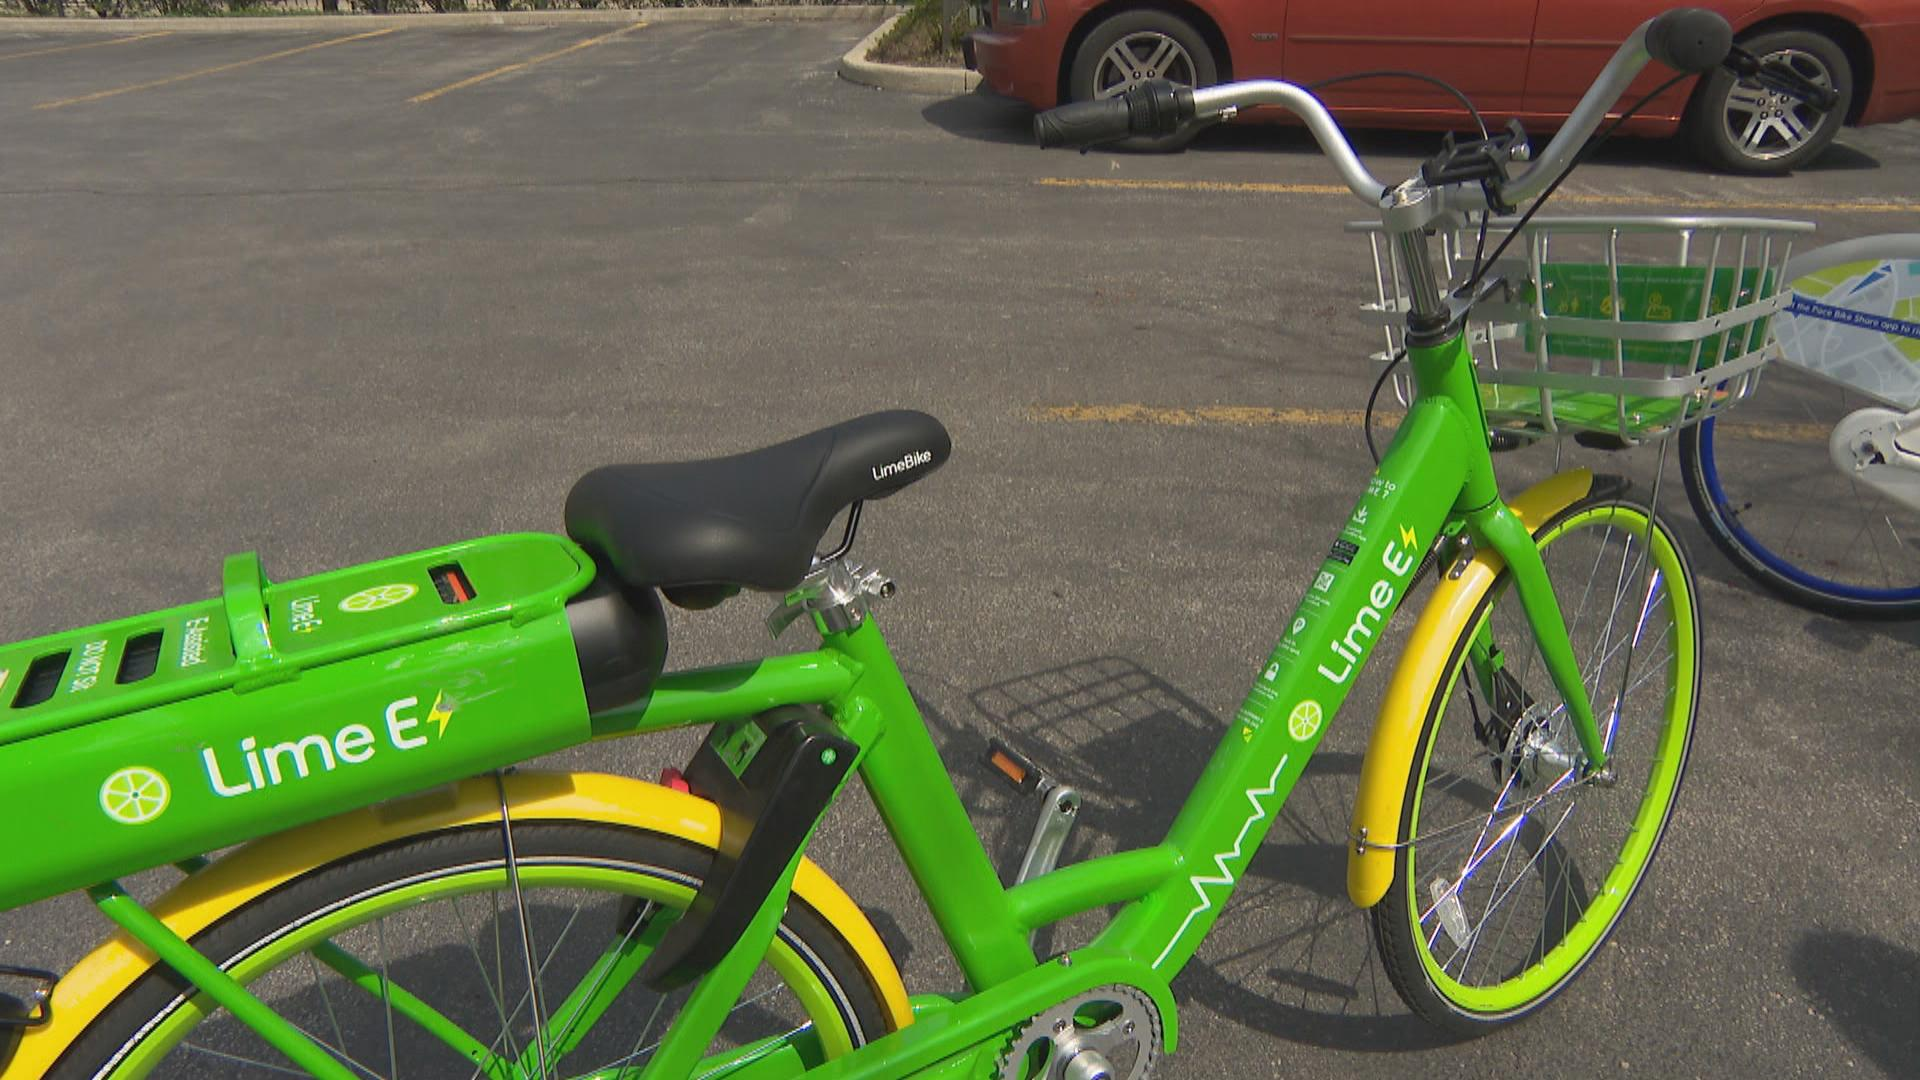 Each vendor participating in Chicago's Dockless Bike Share Pilot Project offers its own look. Some of the bikes, like this lime green model, are electric. (Chicago Tonight)